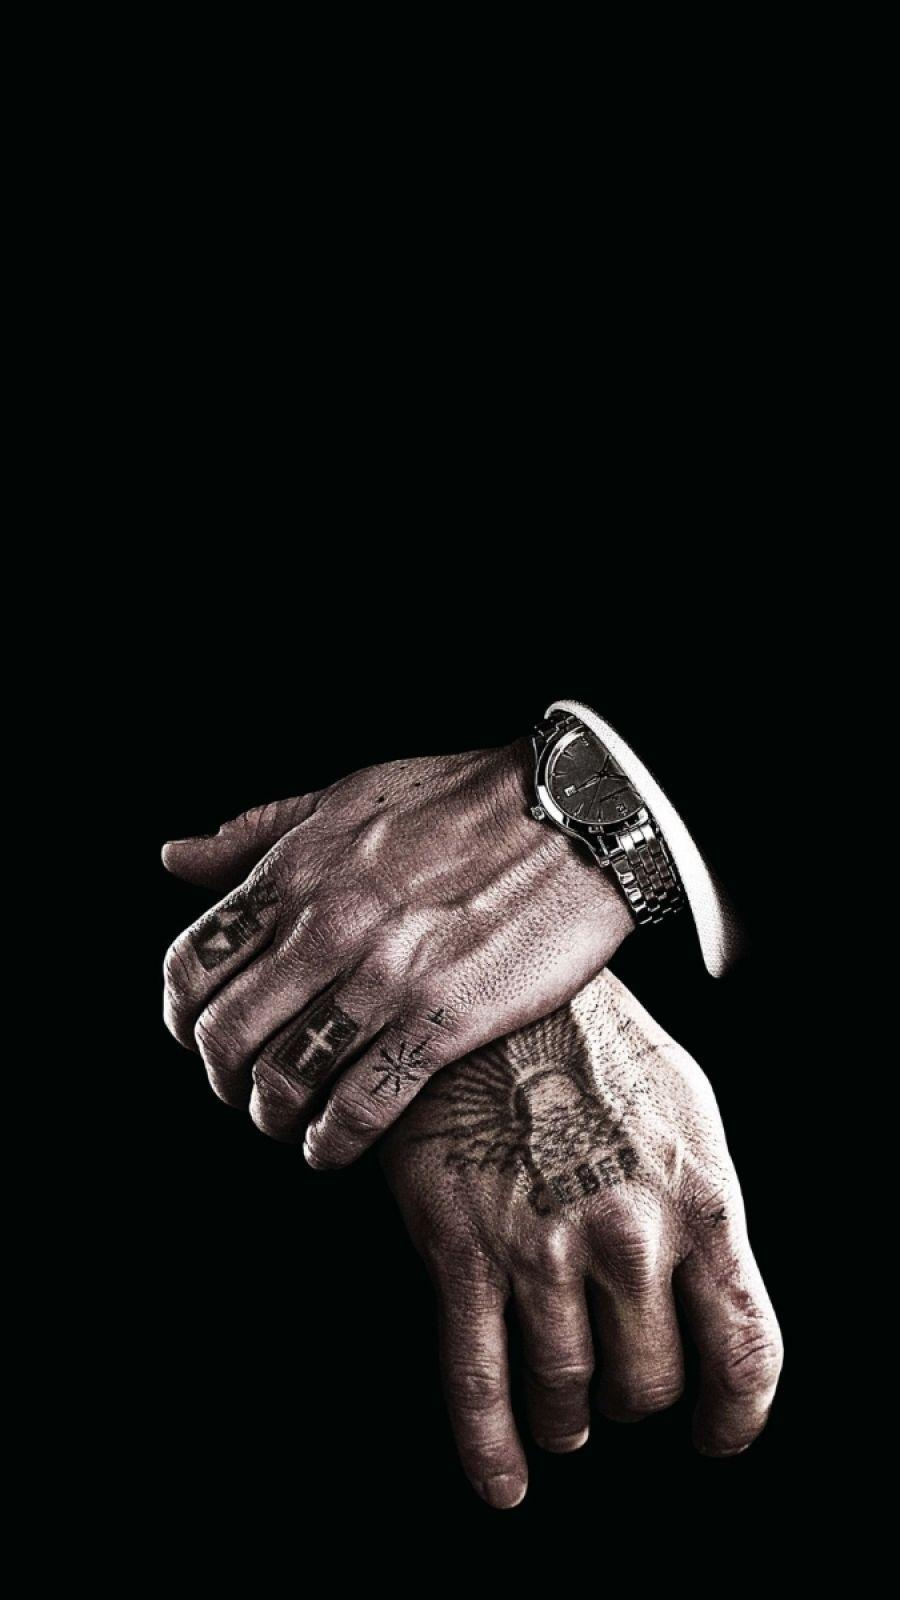 Black-mafia-watch-iPhone-Wallpaper | iPhone Wallpapers | Pinterest .